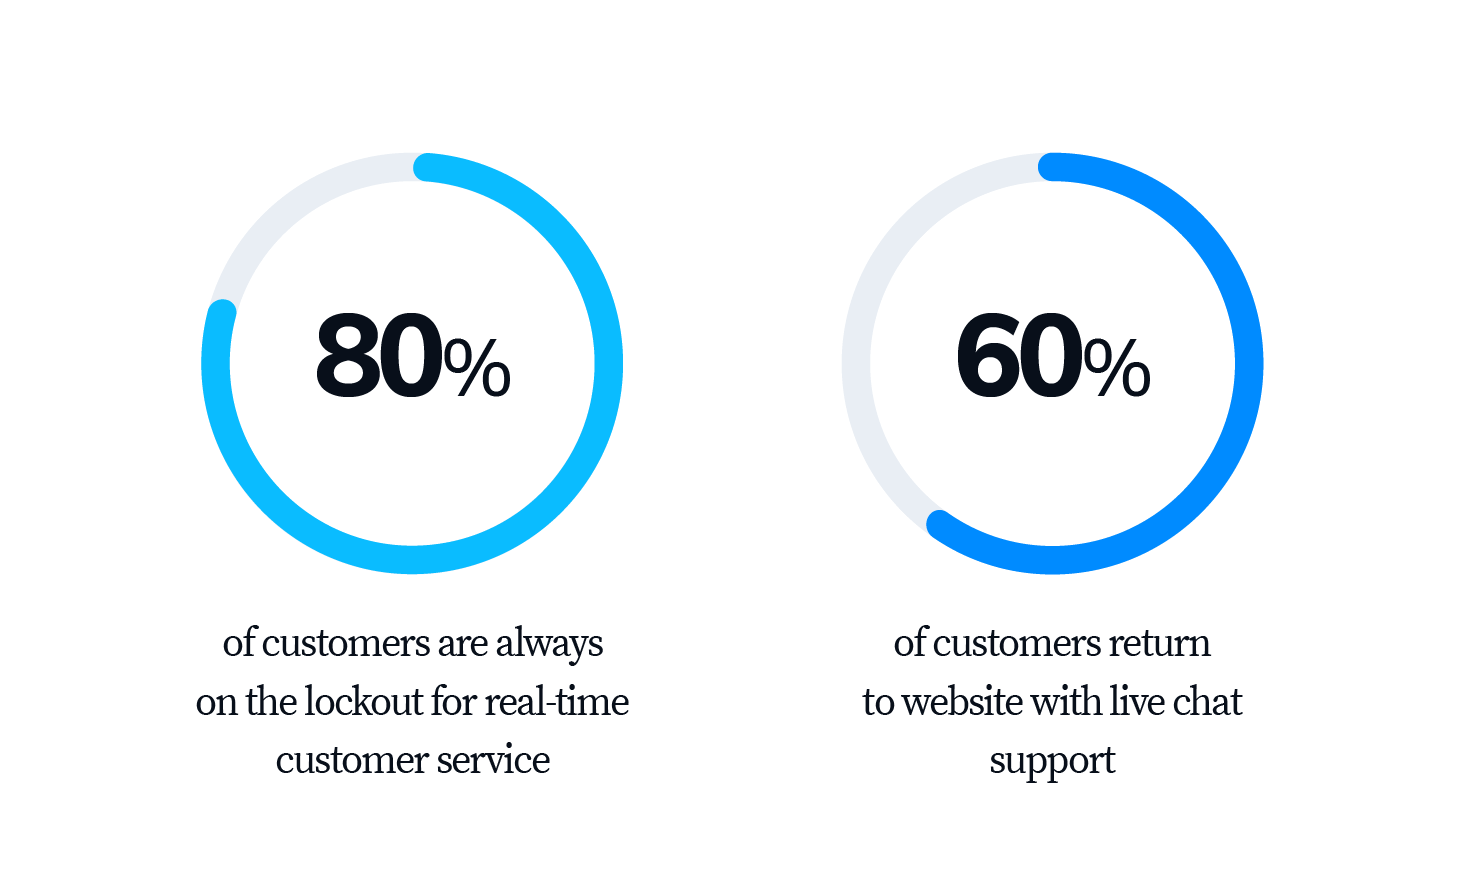 Pie charts concerning customer attitude towards live chat support and real-time customer service